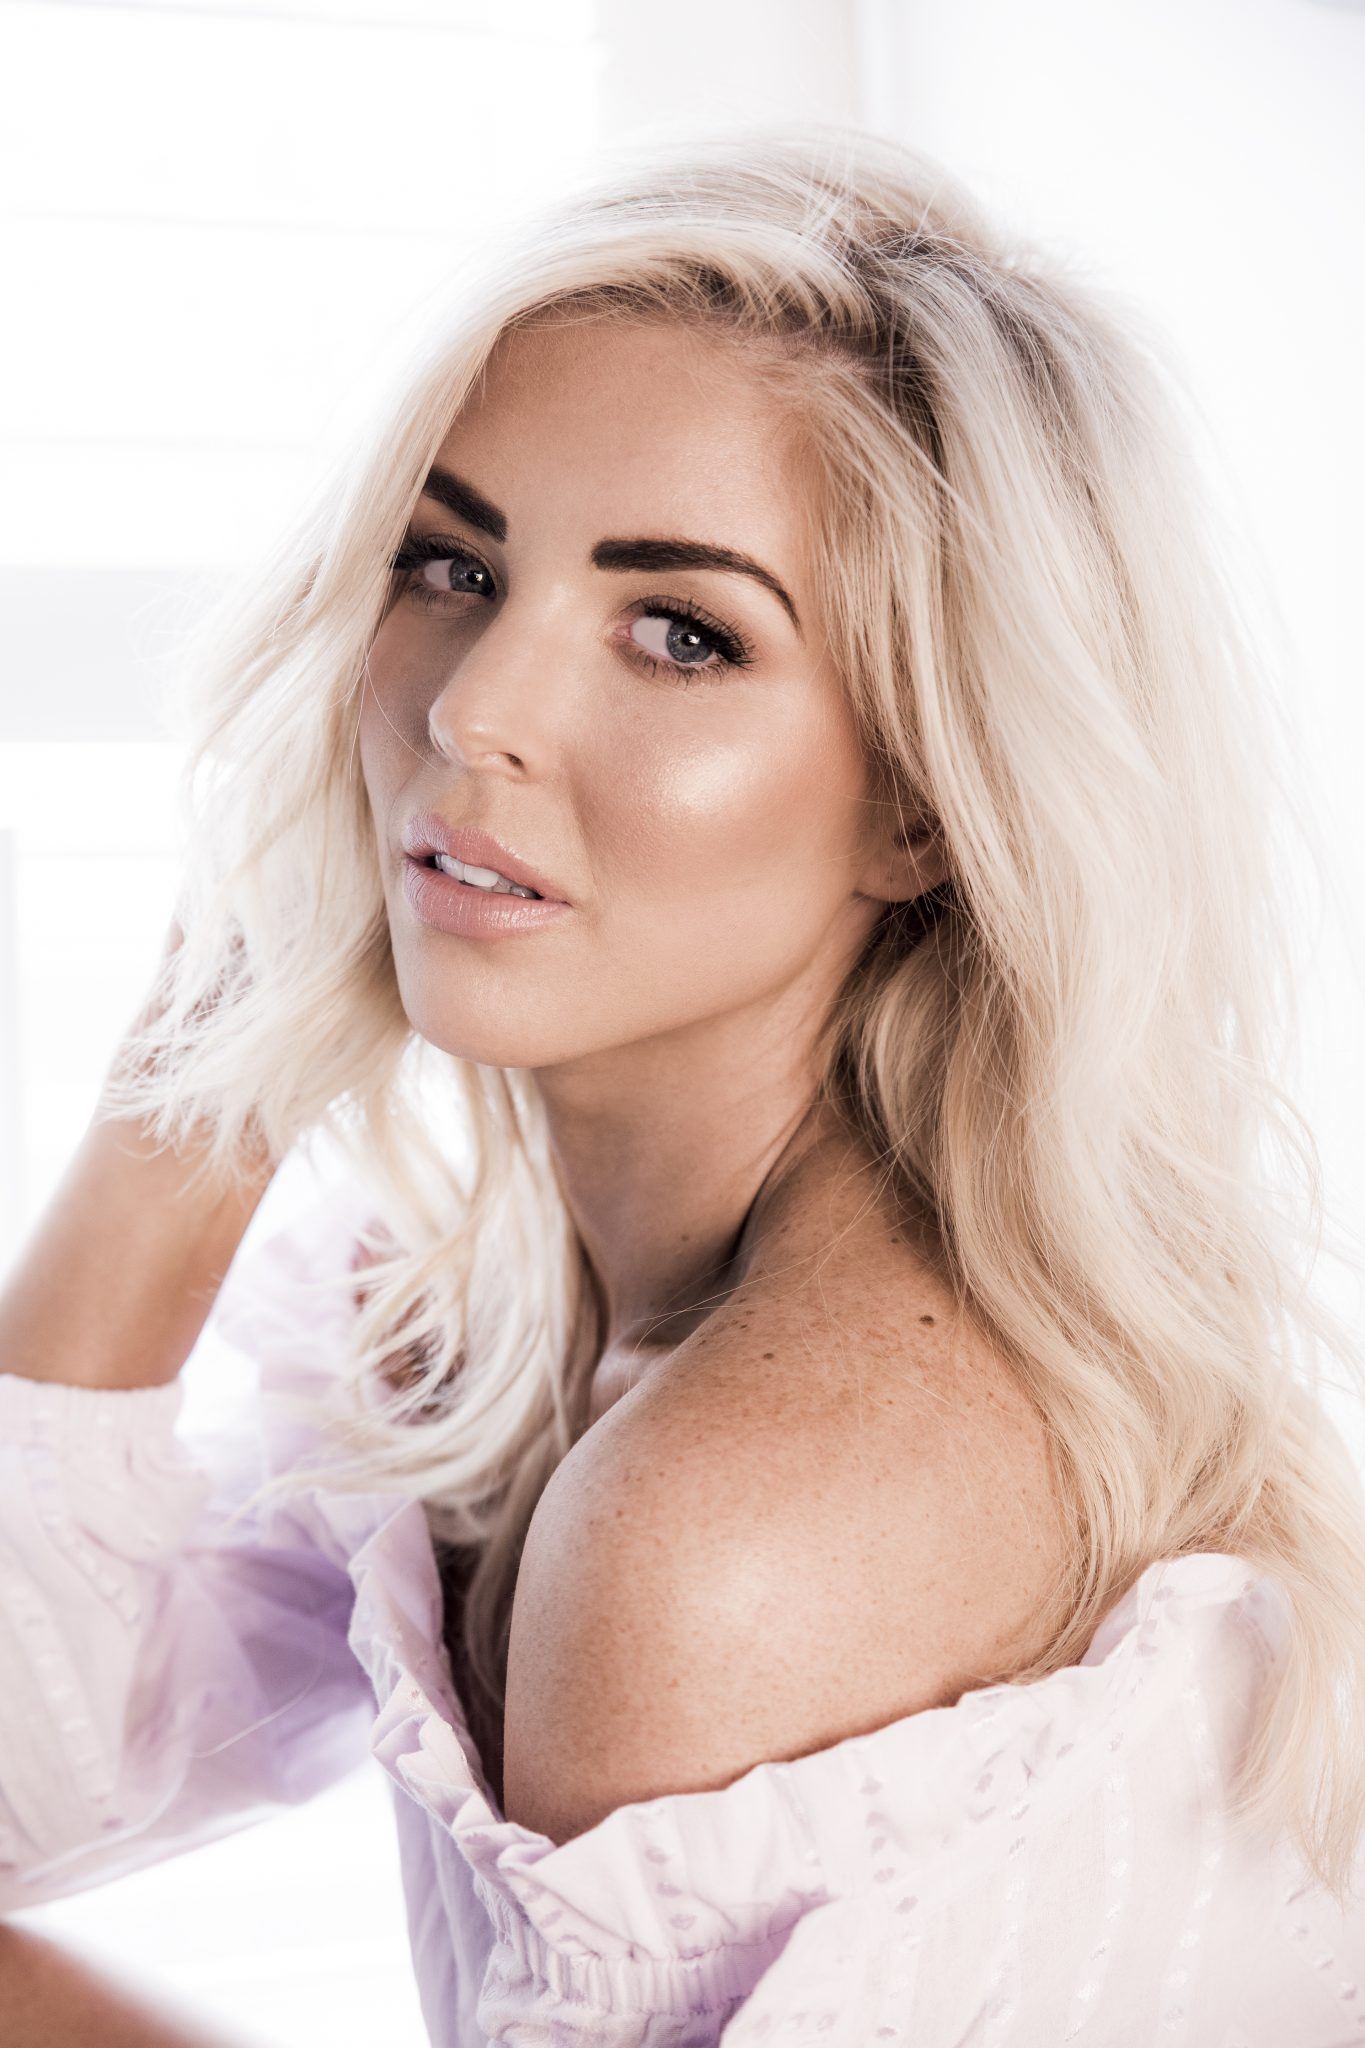 sarah jane young, beauty blogger, melbourne beauty blogger, australian beauty blogger, sheissarahjane, Designer Lift FOundation, Caudalie Beauty Elixir, PONi Cosmetics, beauty review, glowy skin, gorgeous glowy skin, blonde